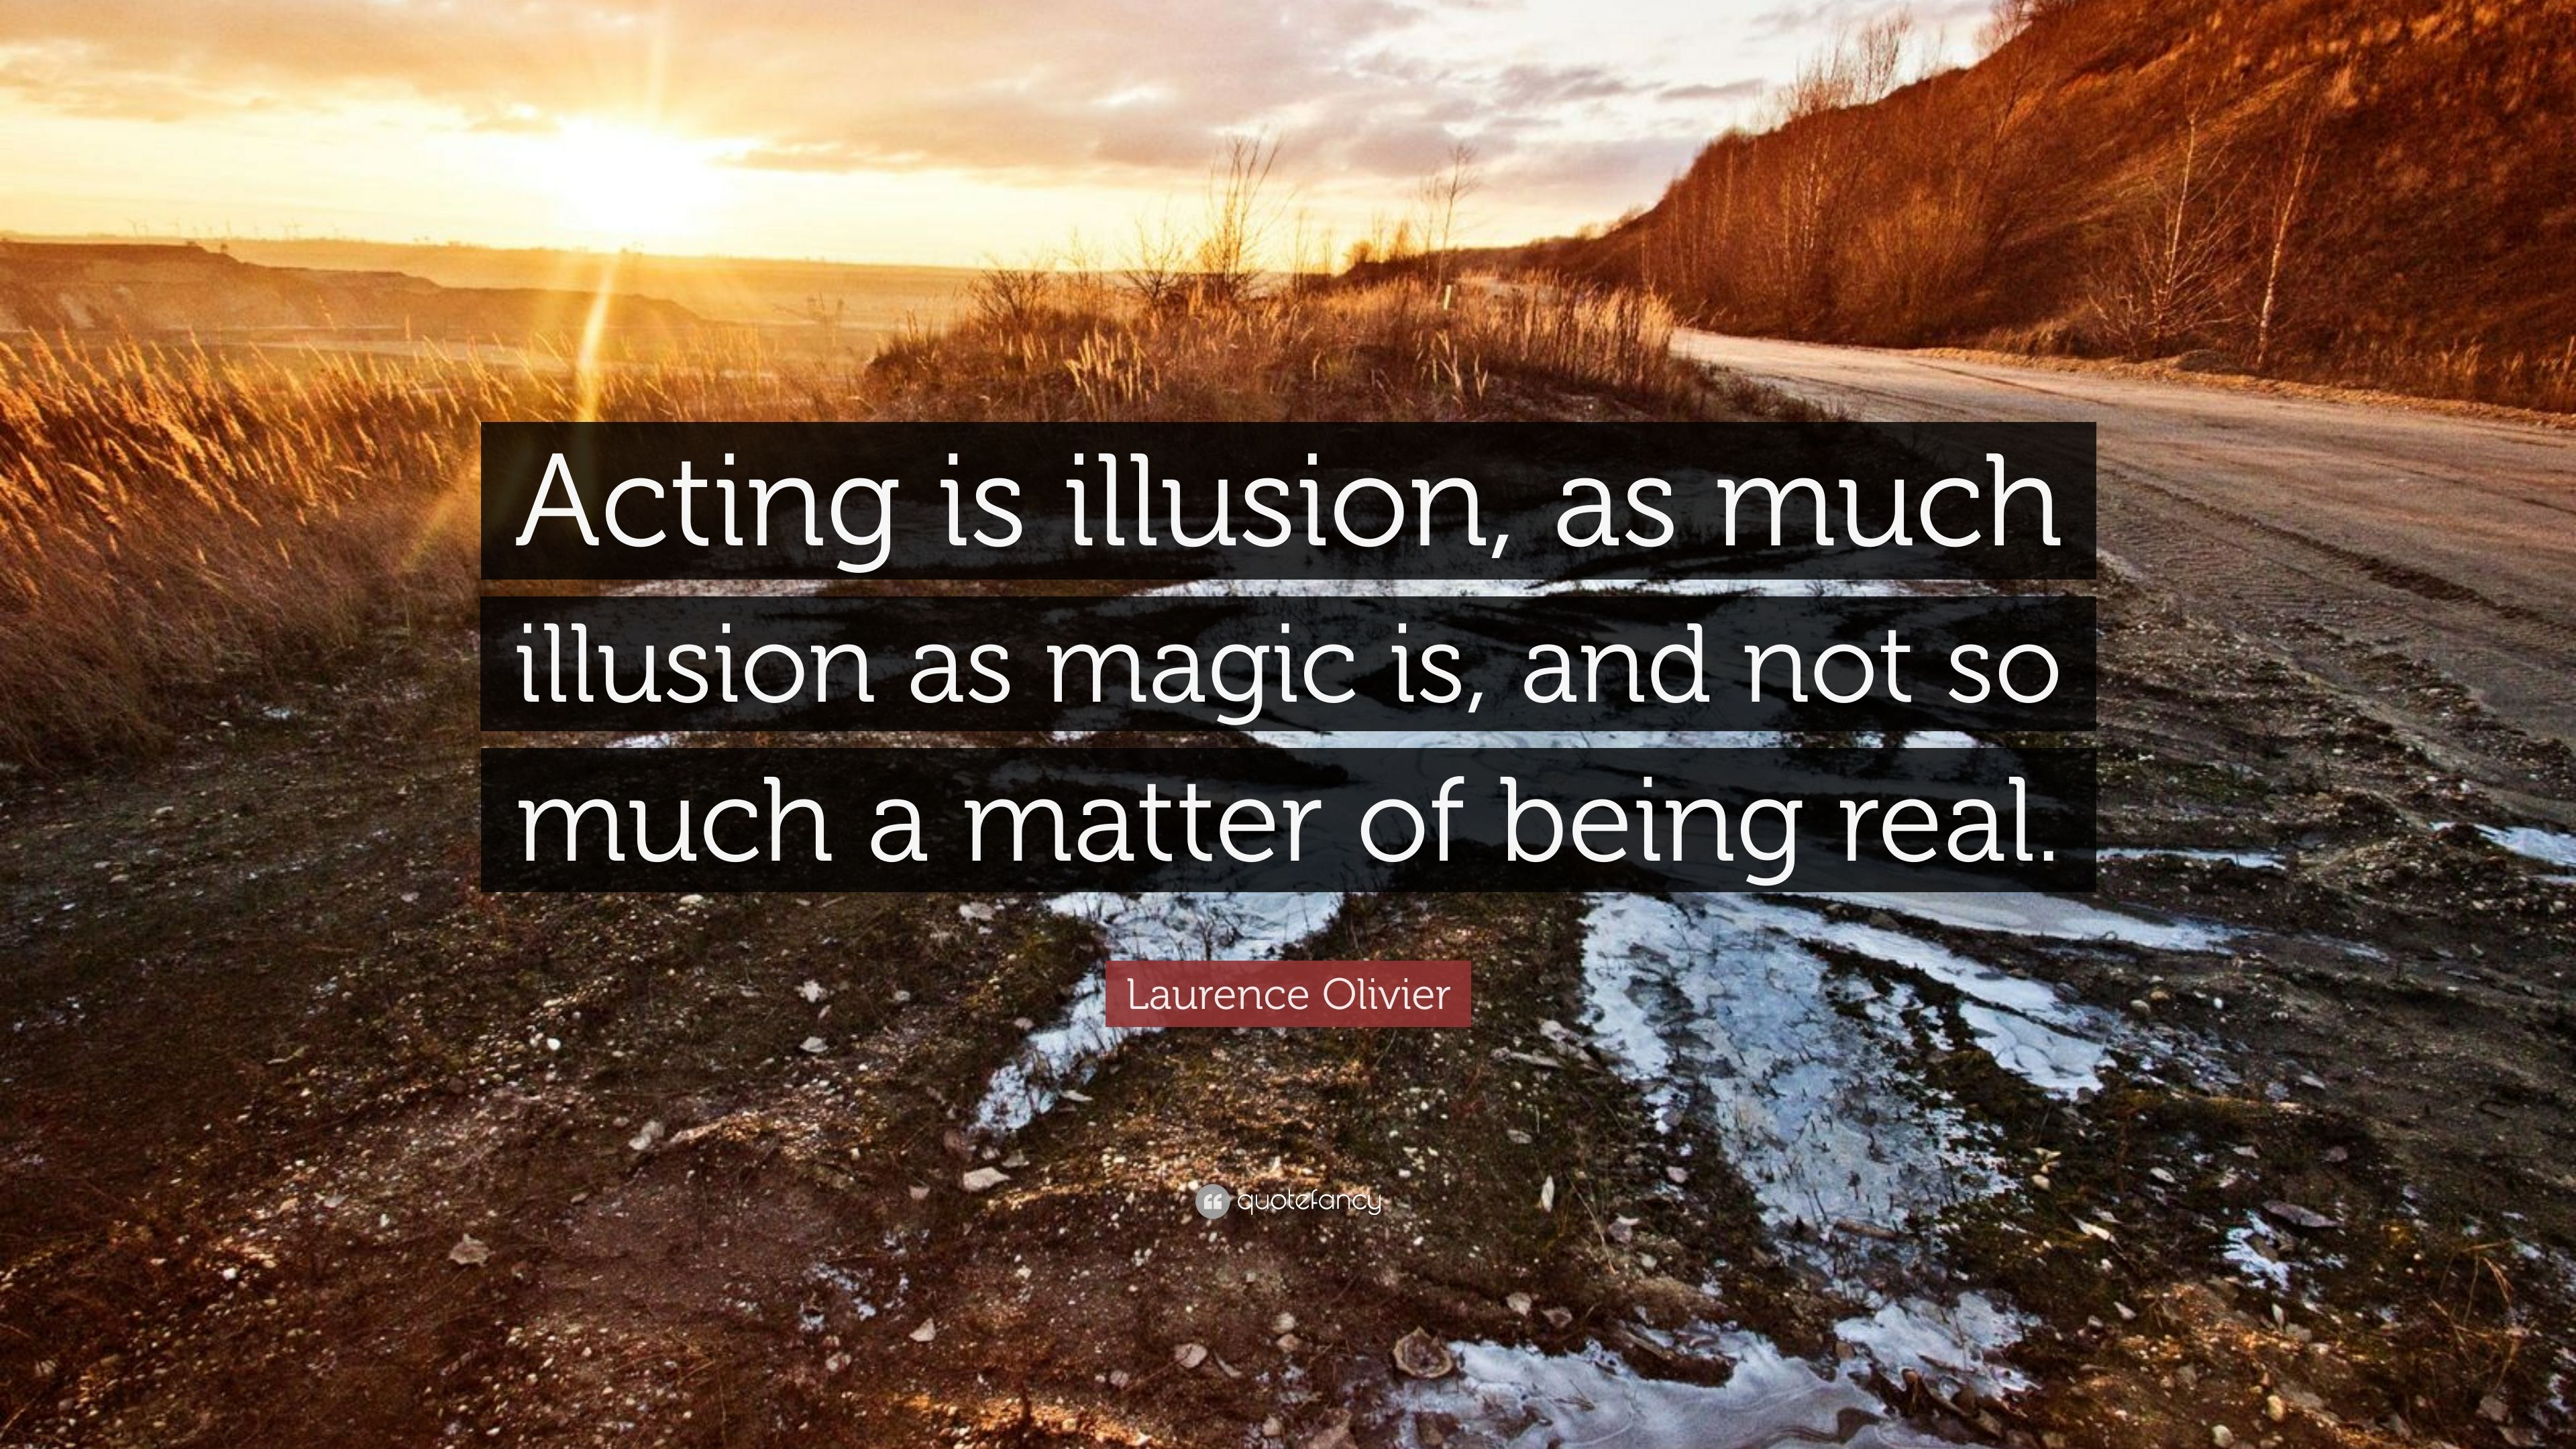 So Much For Illusion